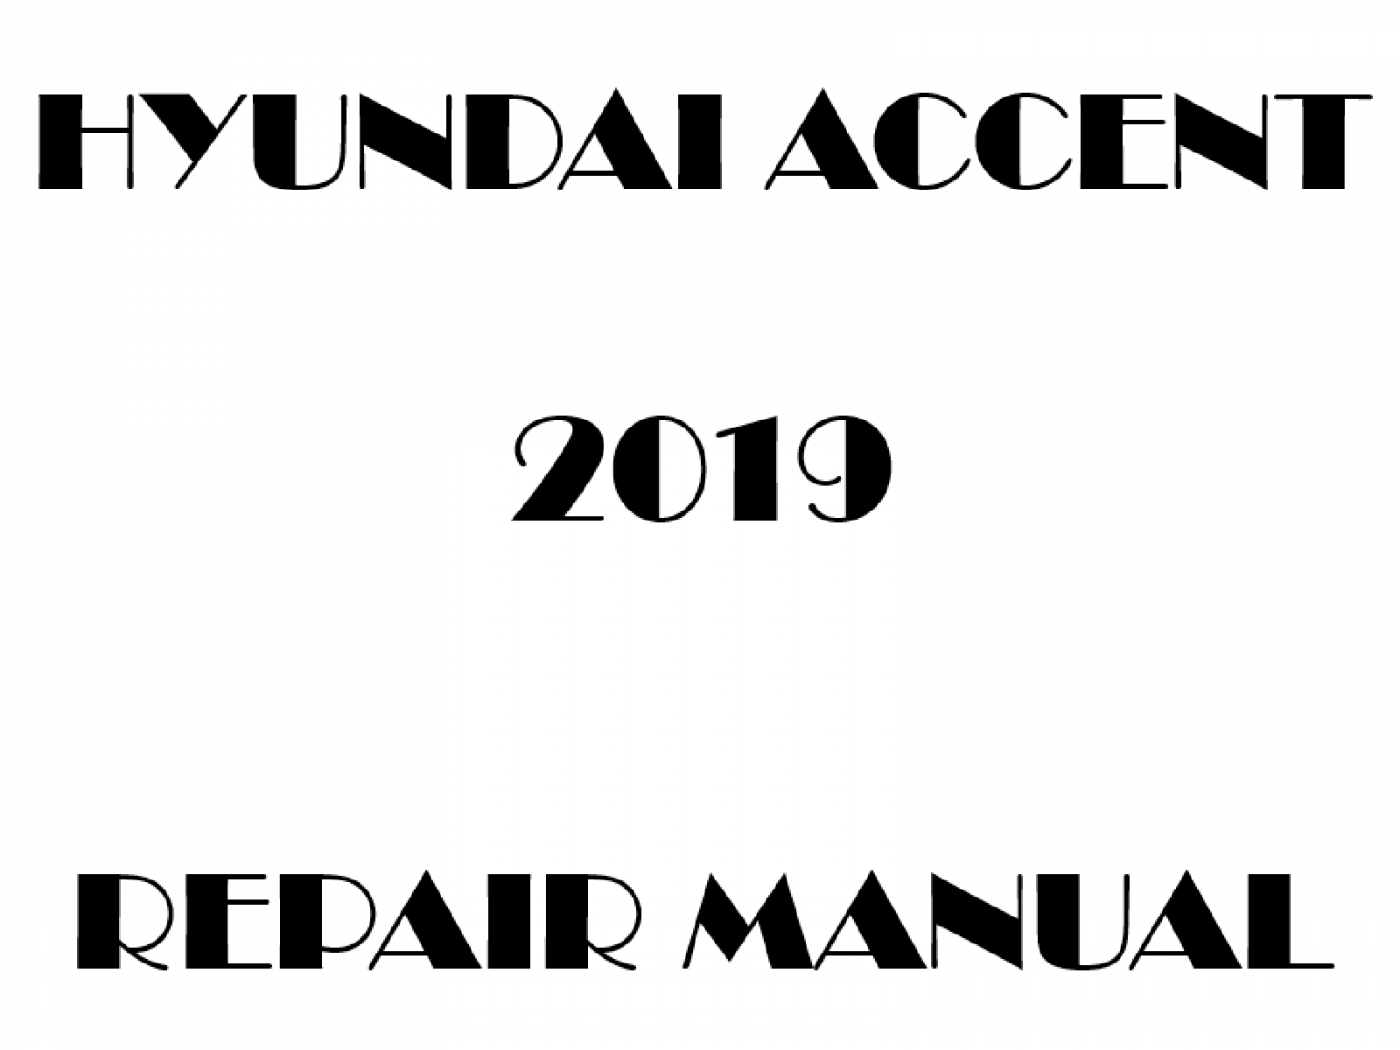 2019 Hyundai Accent repair manual